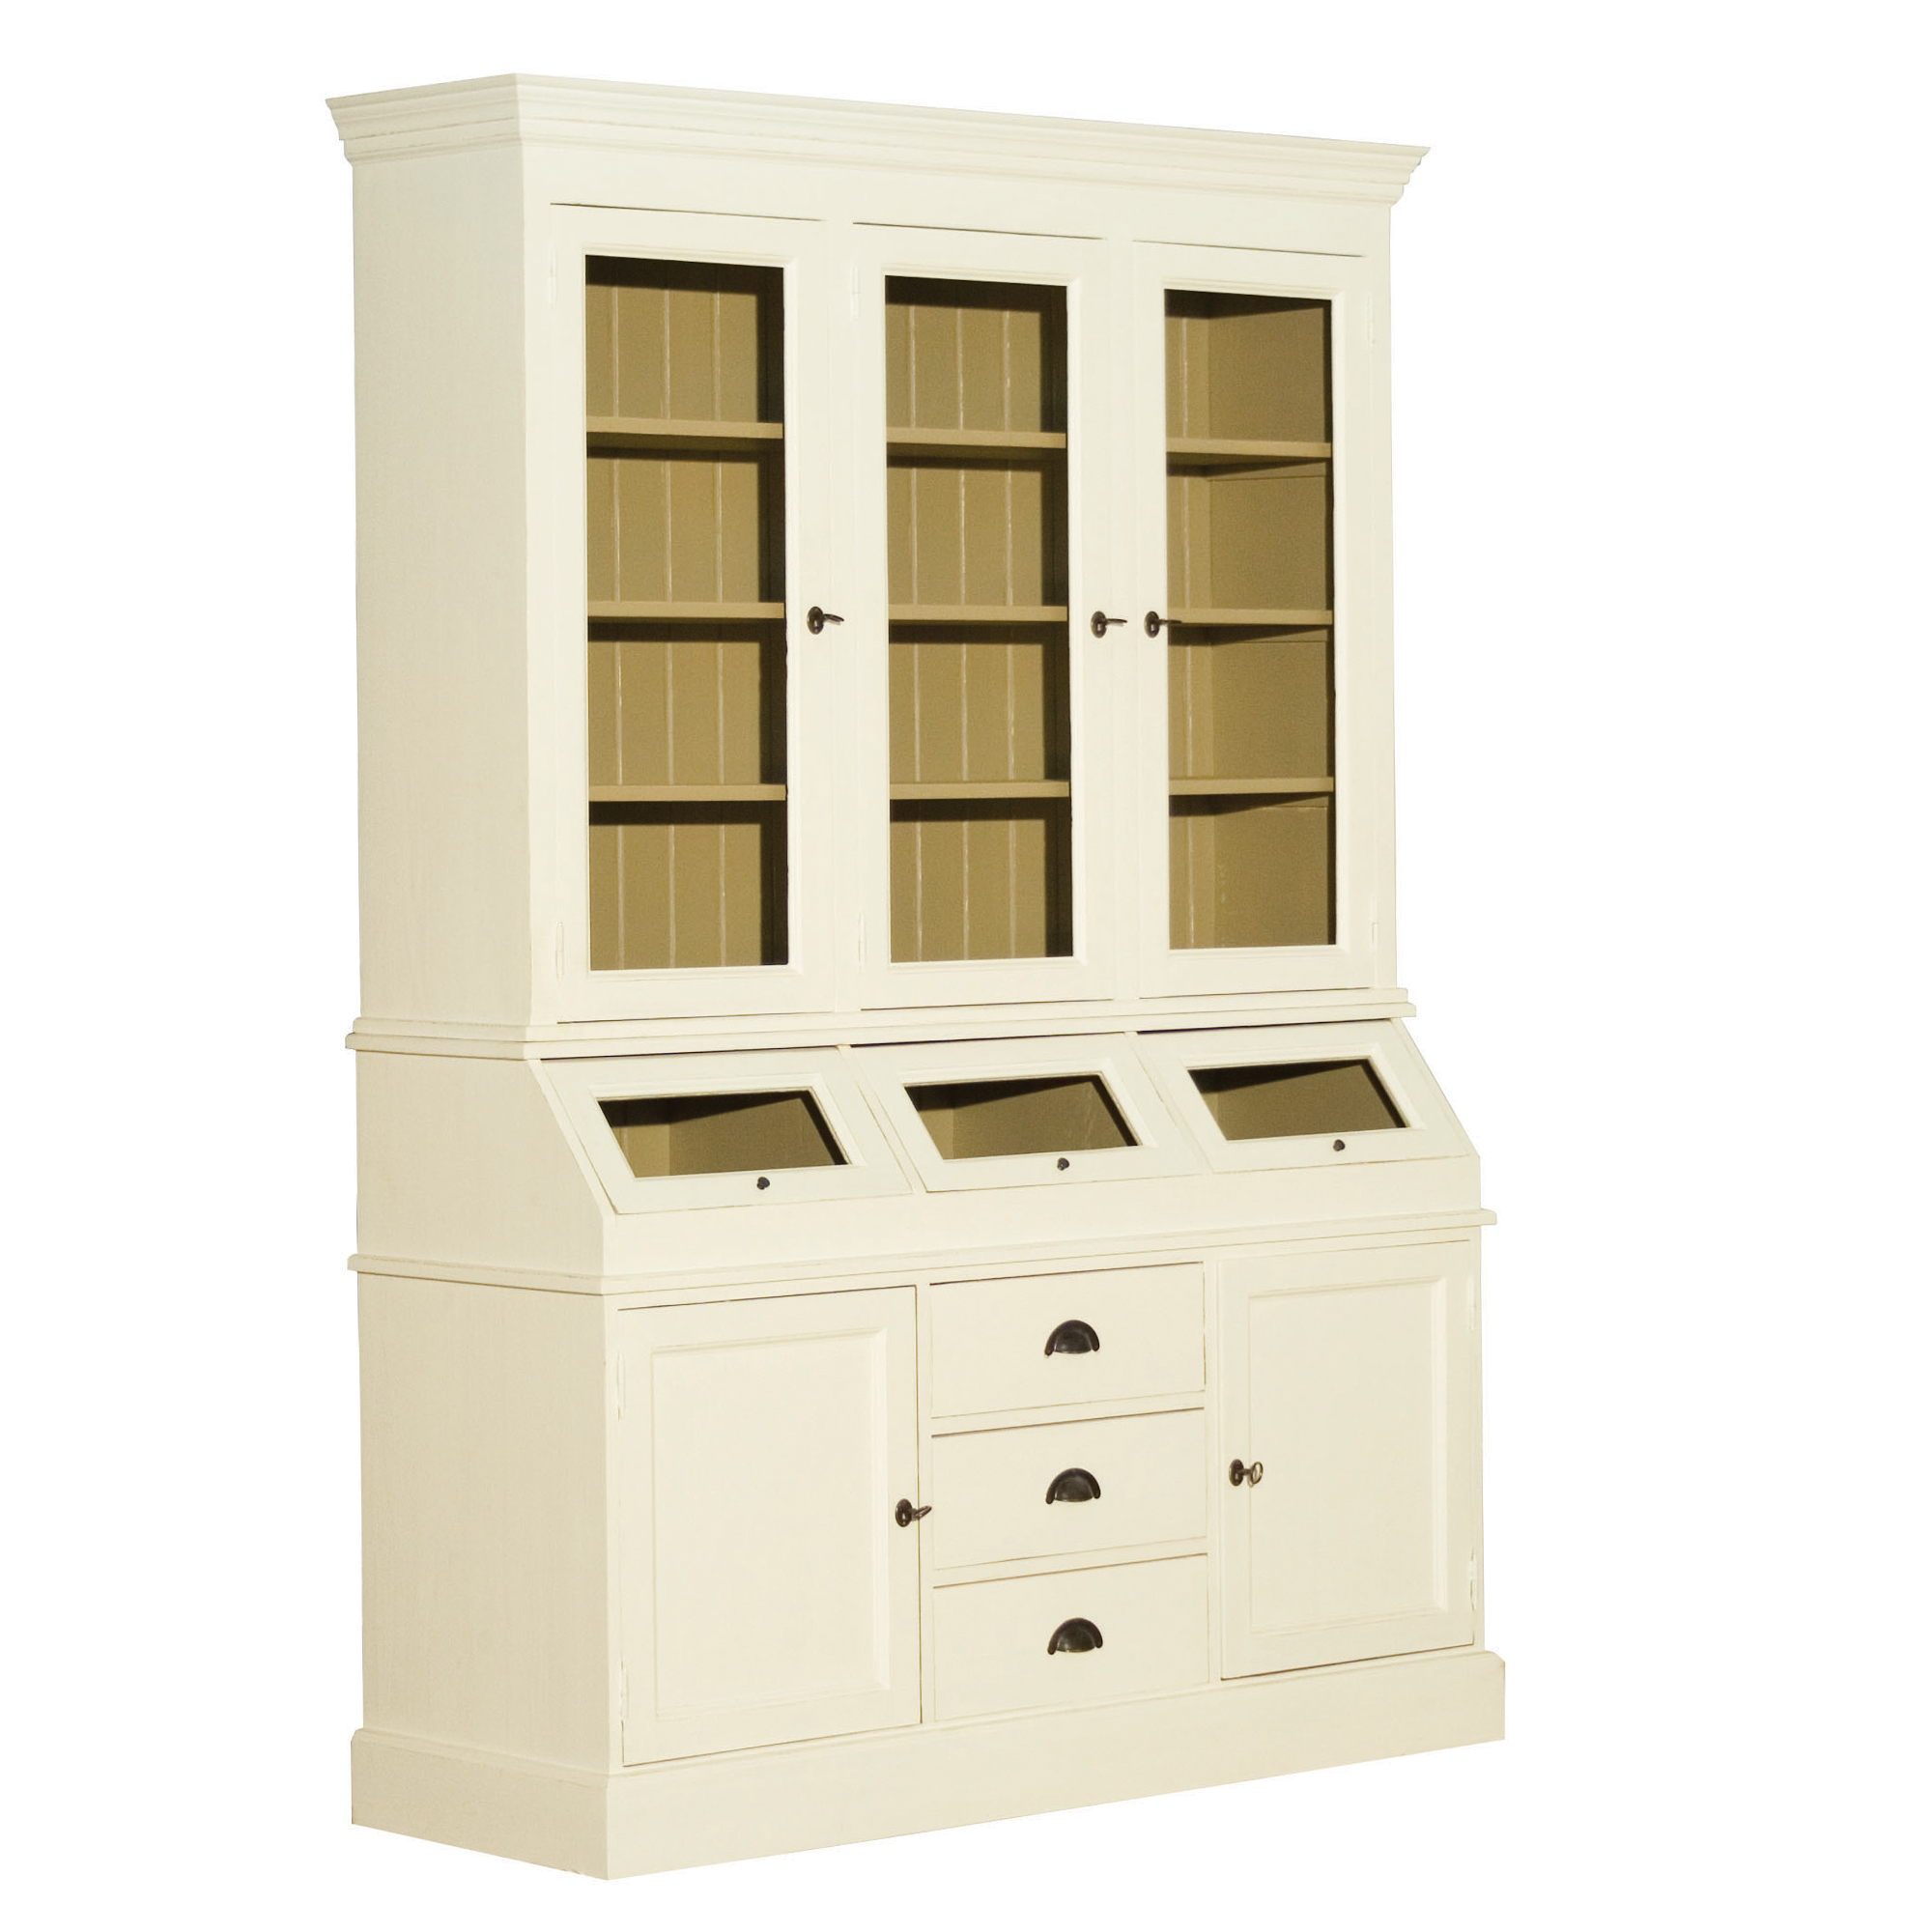 French Kitchen Display Cabinet